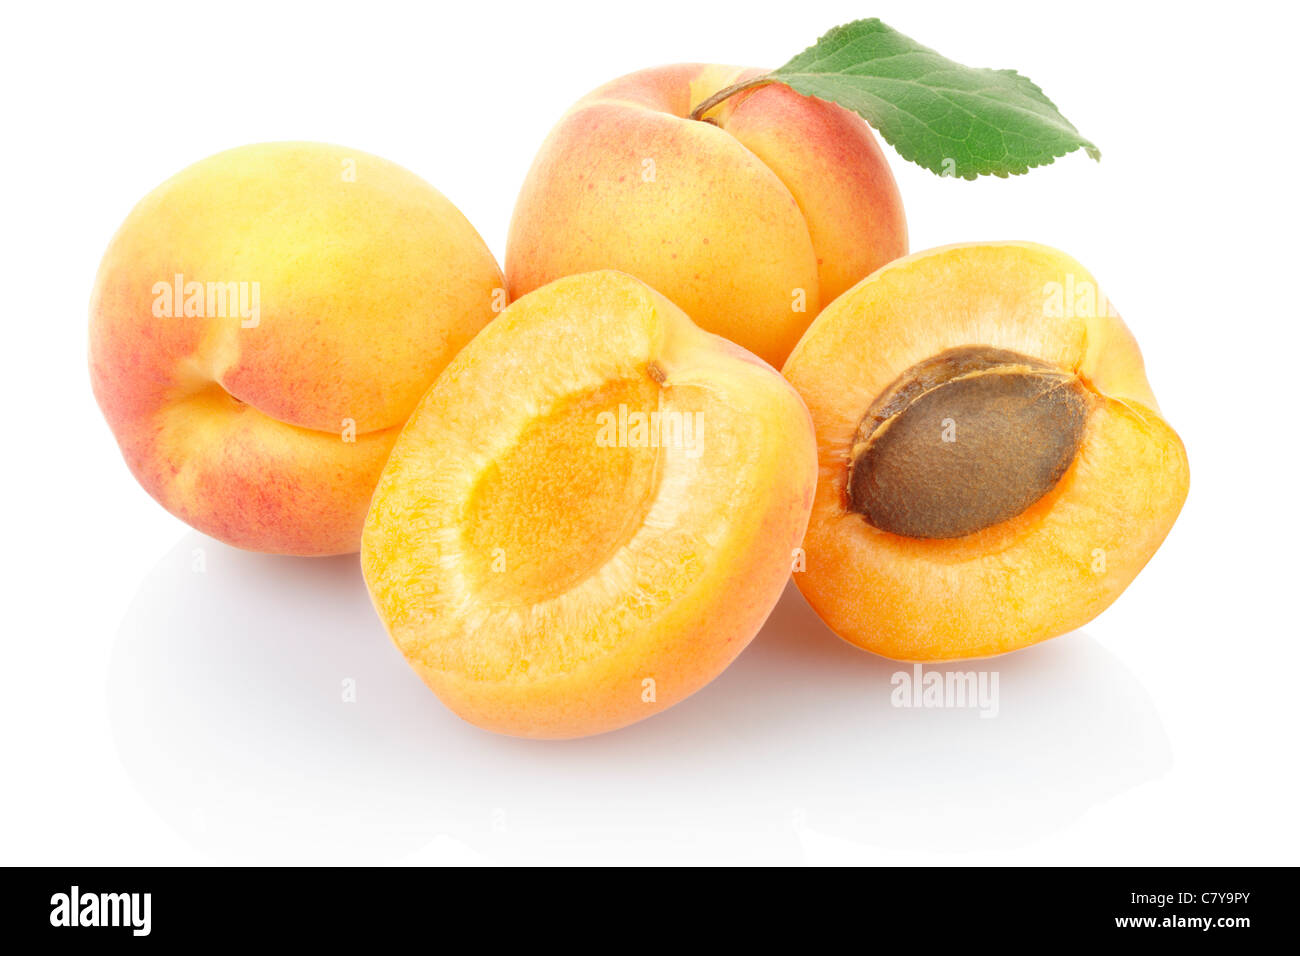 Apricots isolated on white - Stock Image